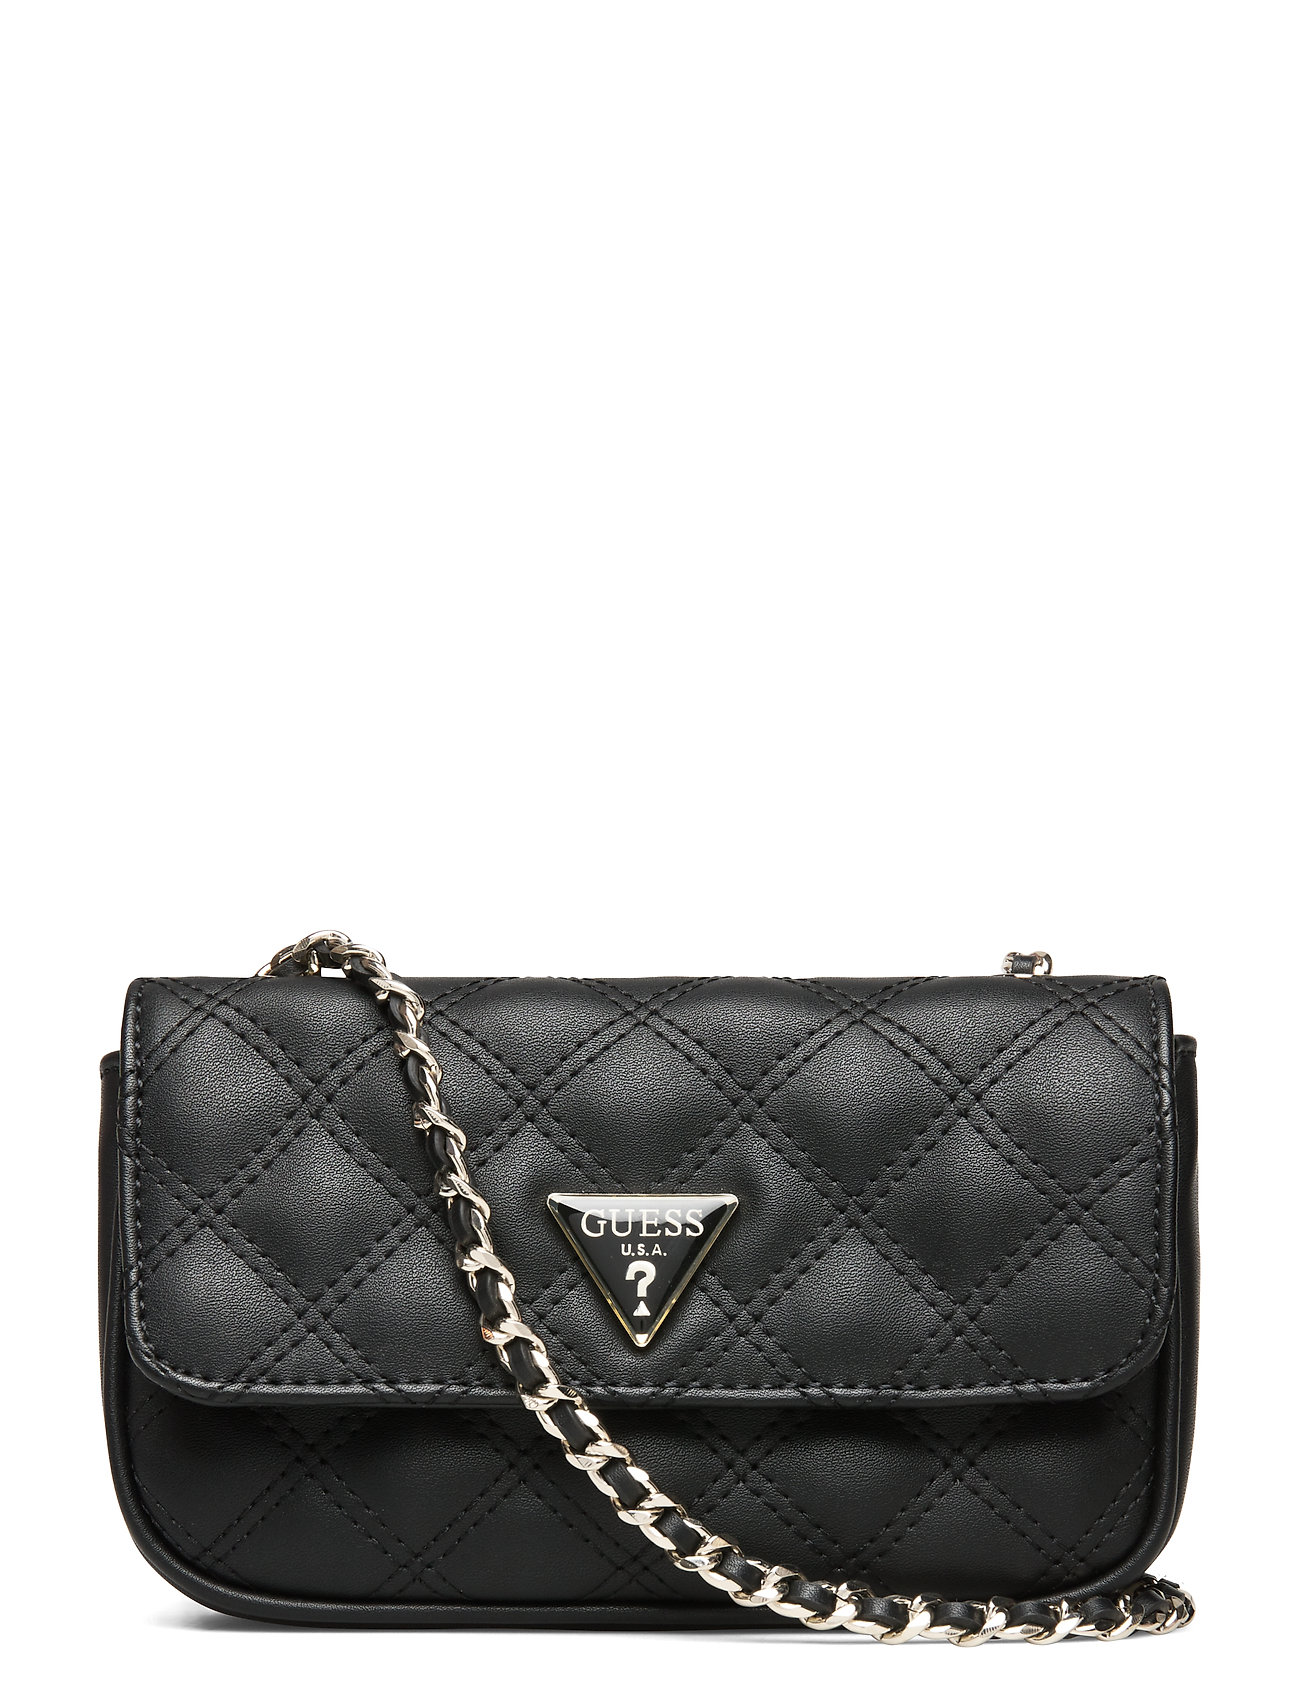 GUESS CESSILY MICRO SLING - BLACK